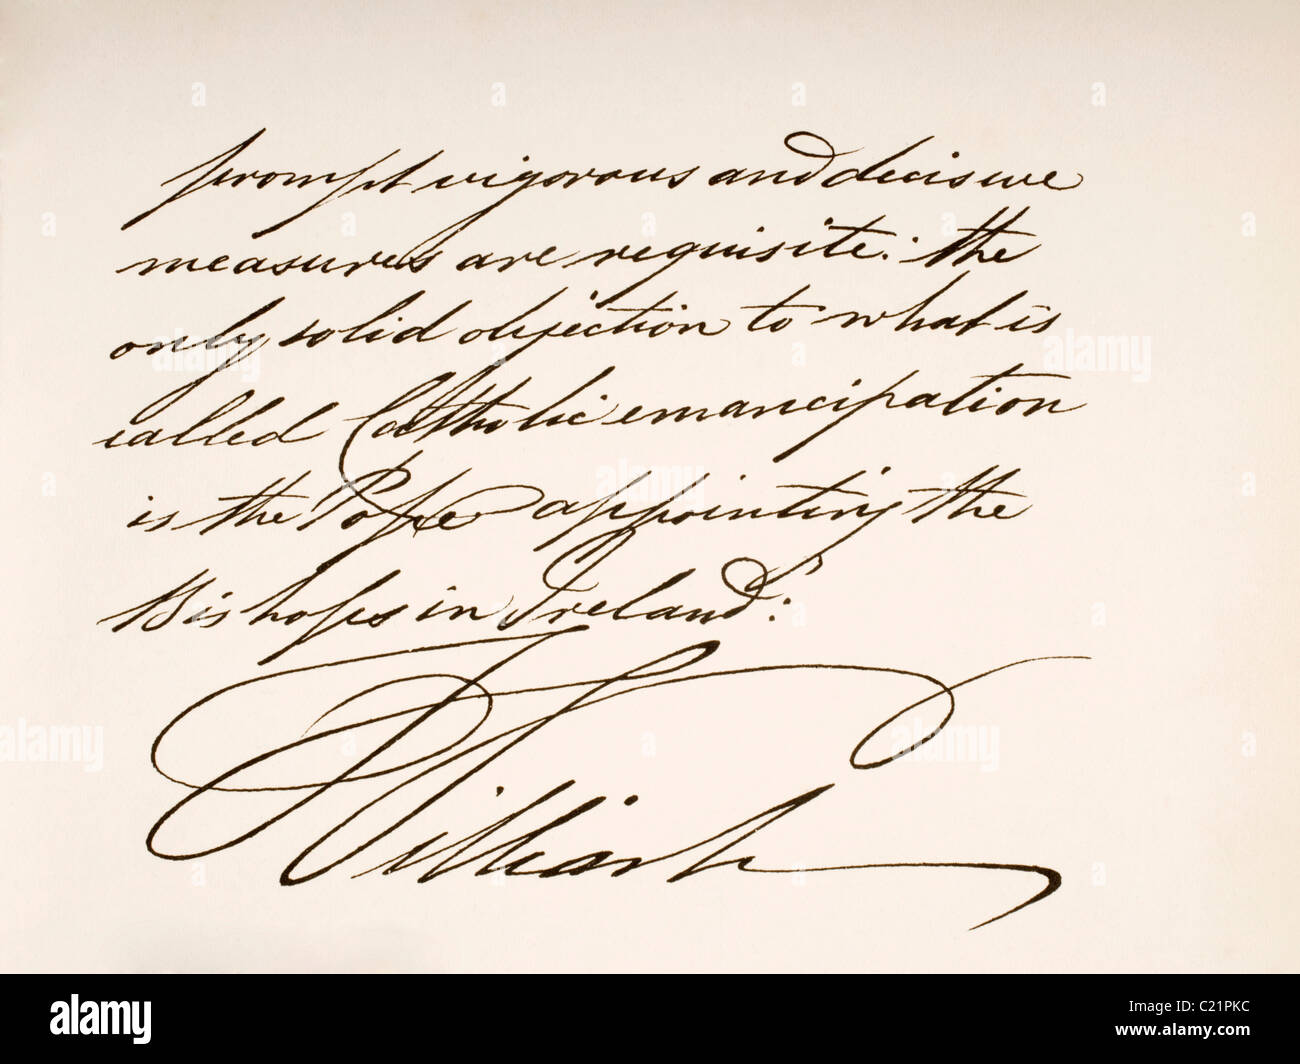 William IV, 1765 to 1837. King of Great Britain and Ireland and King of Hanover. Hand writing sample. - Stock Image